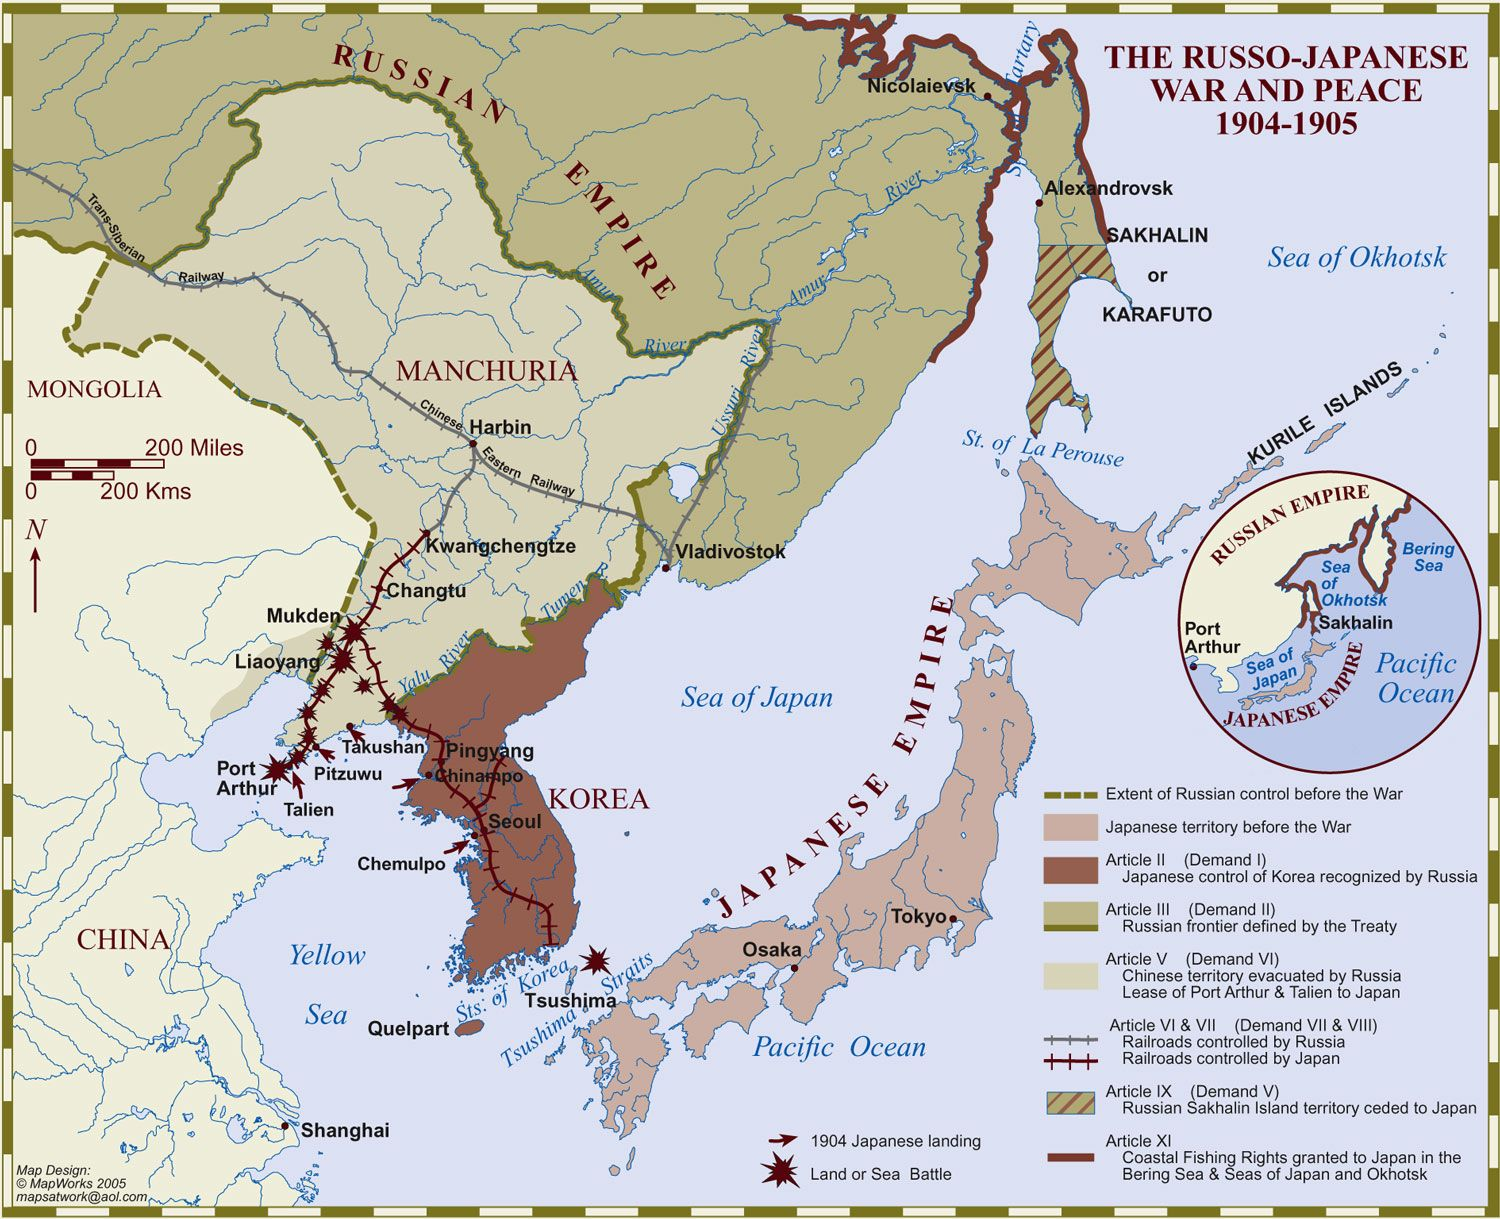 1904 1905 russo japanese war russian revolution prelude maps russo japanese war and peace map gumiabroncs Choice Image